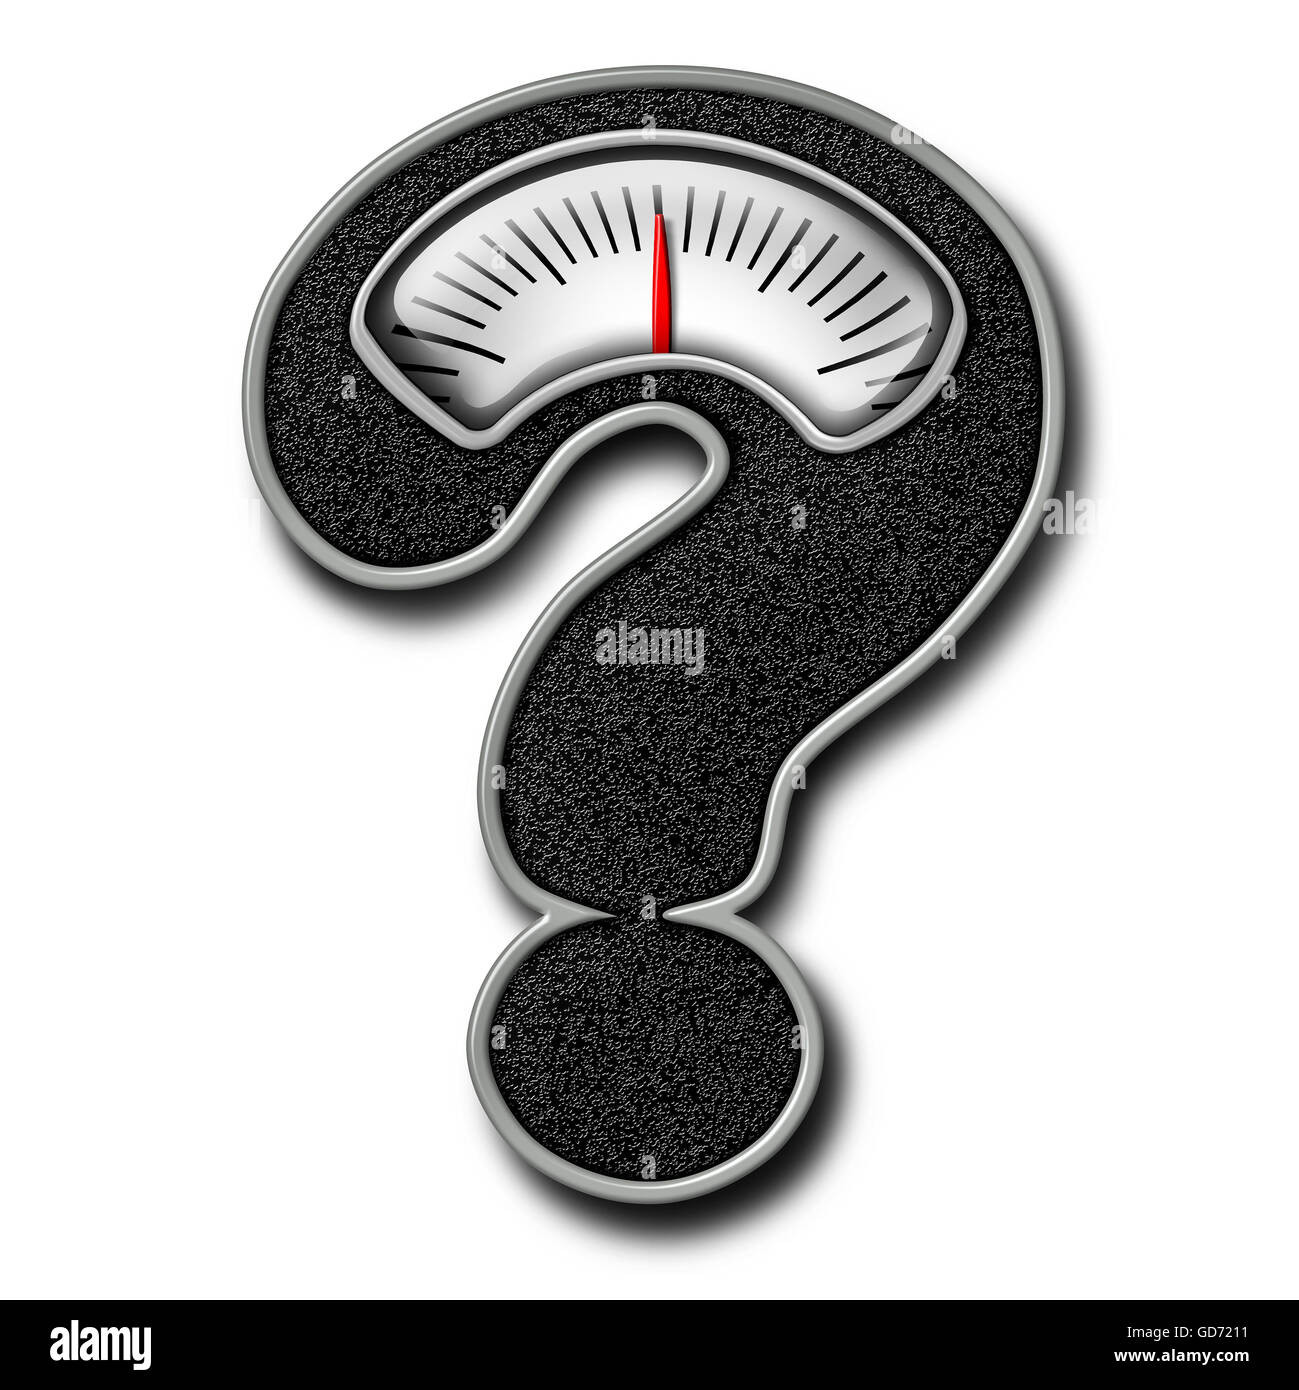 Dieting advice symbol as a bathroom weight scale shaped as a question mark representing diet confusion and healthy - Stock Image